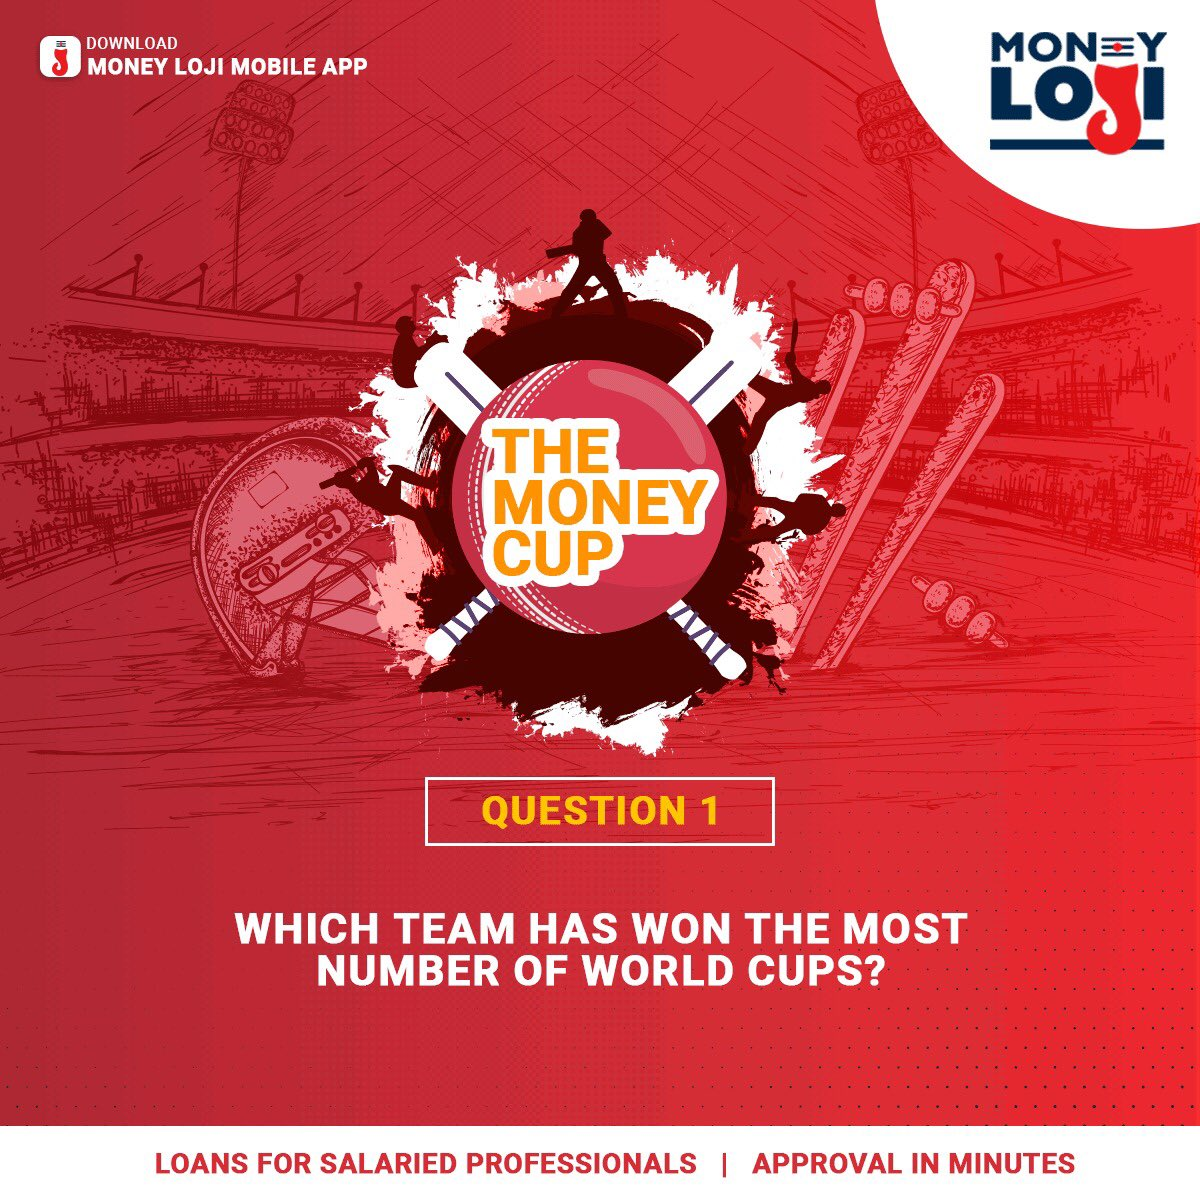 #ContestAlert Can you answer this simple question? Let's see! #Contest Rules- 1. Like/Follow MoneyLoji on Instagram, twitter & Facebook.  2. Tag 3 of your friends.  3.  The contest will close on June 15.  4. Use #TheMoneyCup  #MoneyLoji #WorldCup #WorldCup2019 #ContestTime